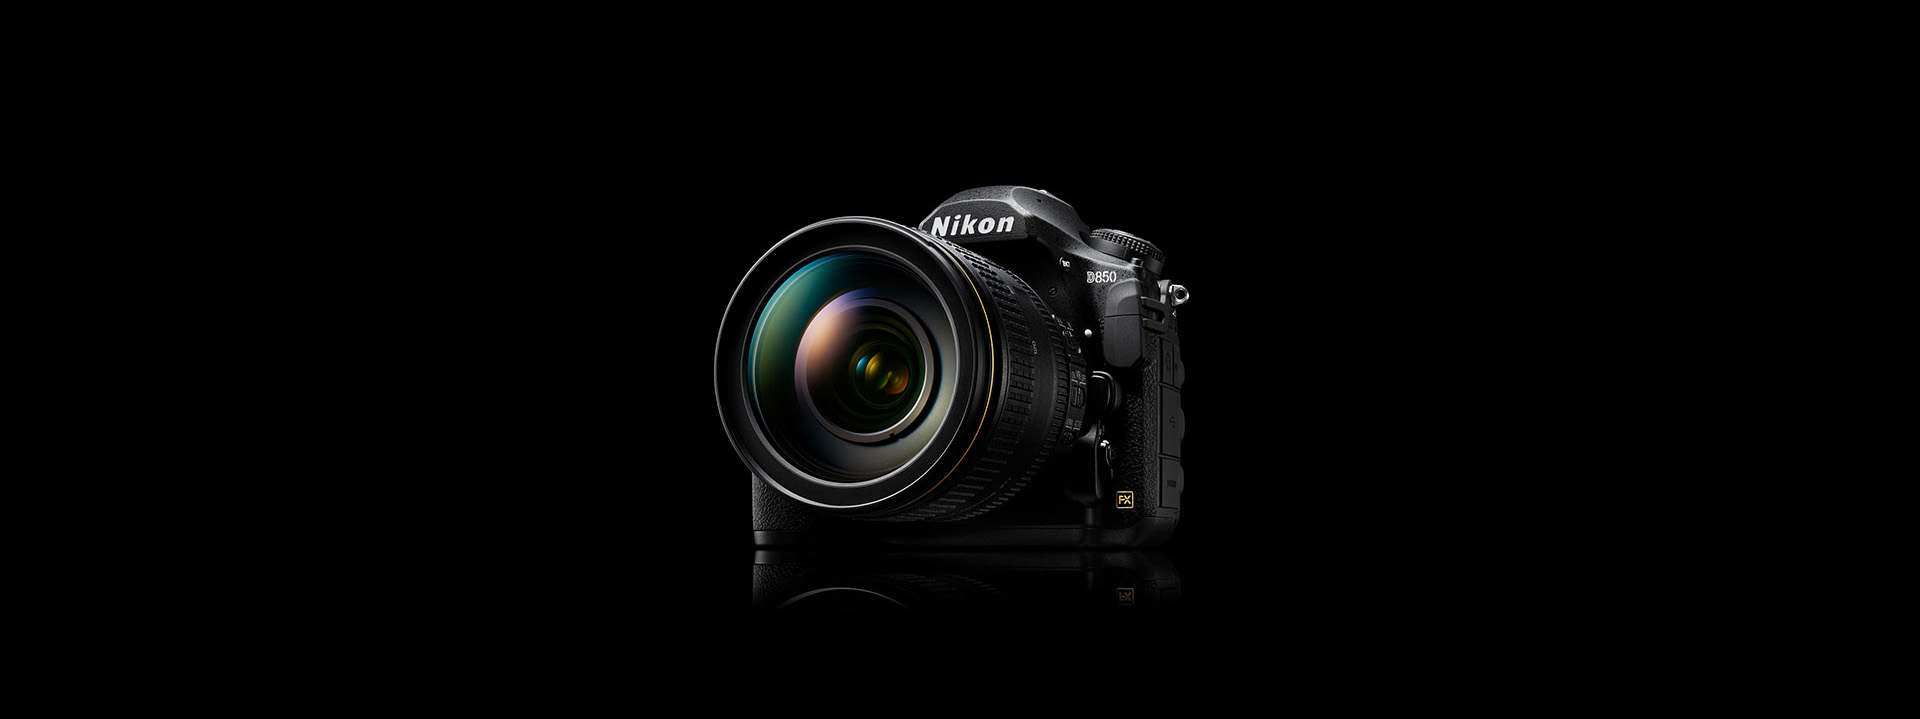 Nikon D850| FX DSLR| full-frame 4k video